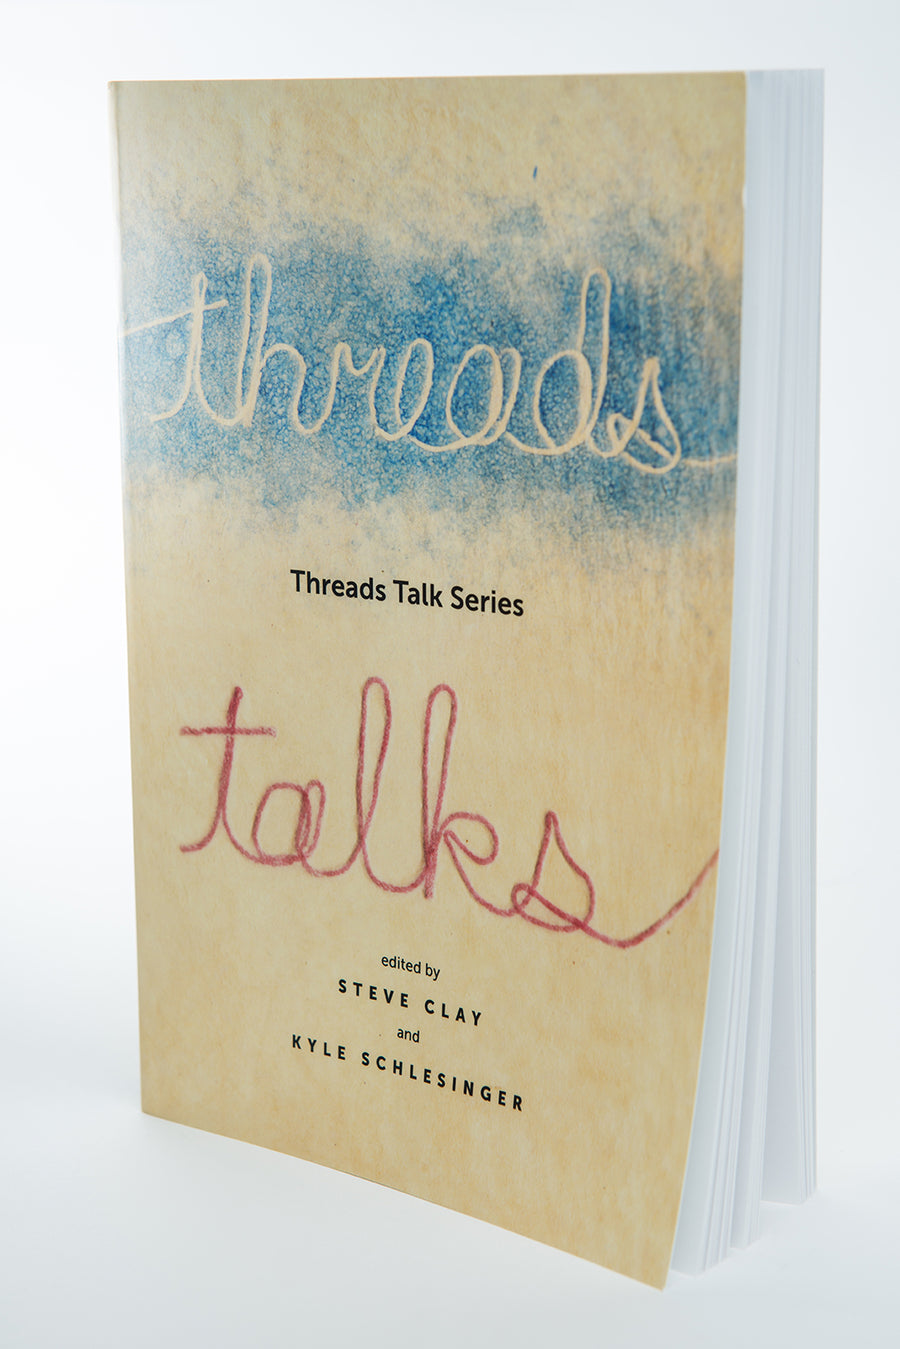 Steve Clay & Kyle Schlesinger : Threads Talks Series